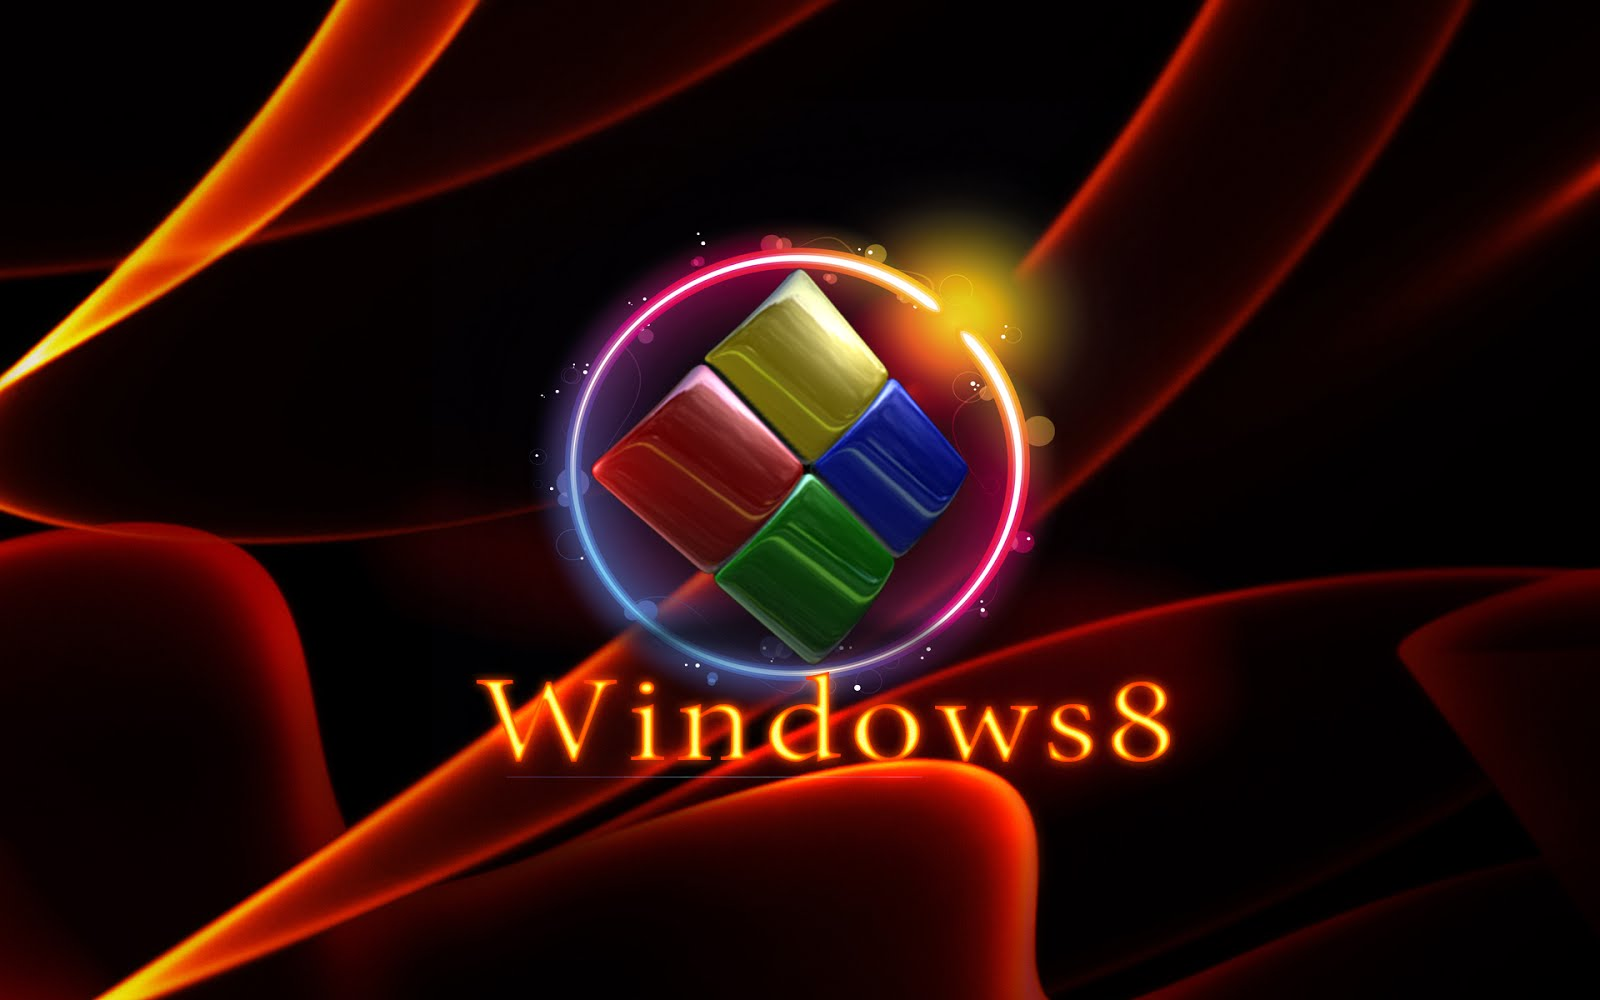 Free Desktop Backgrounds Windows 8